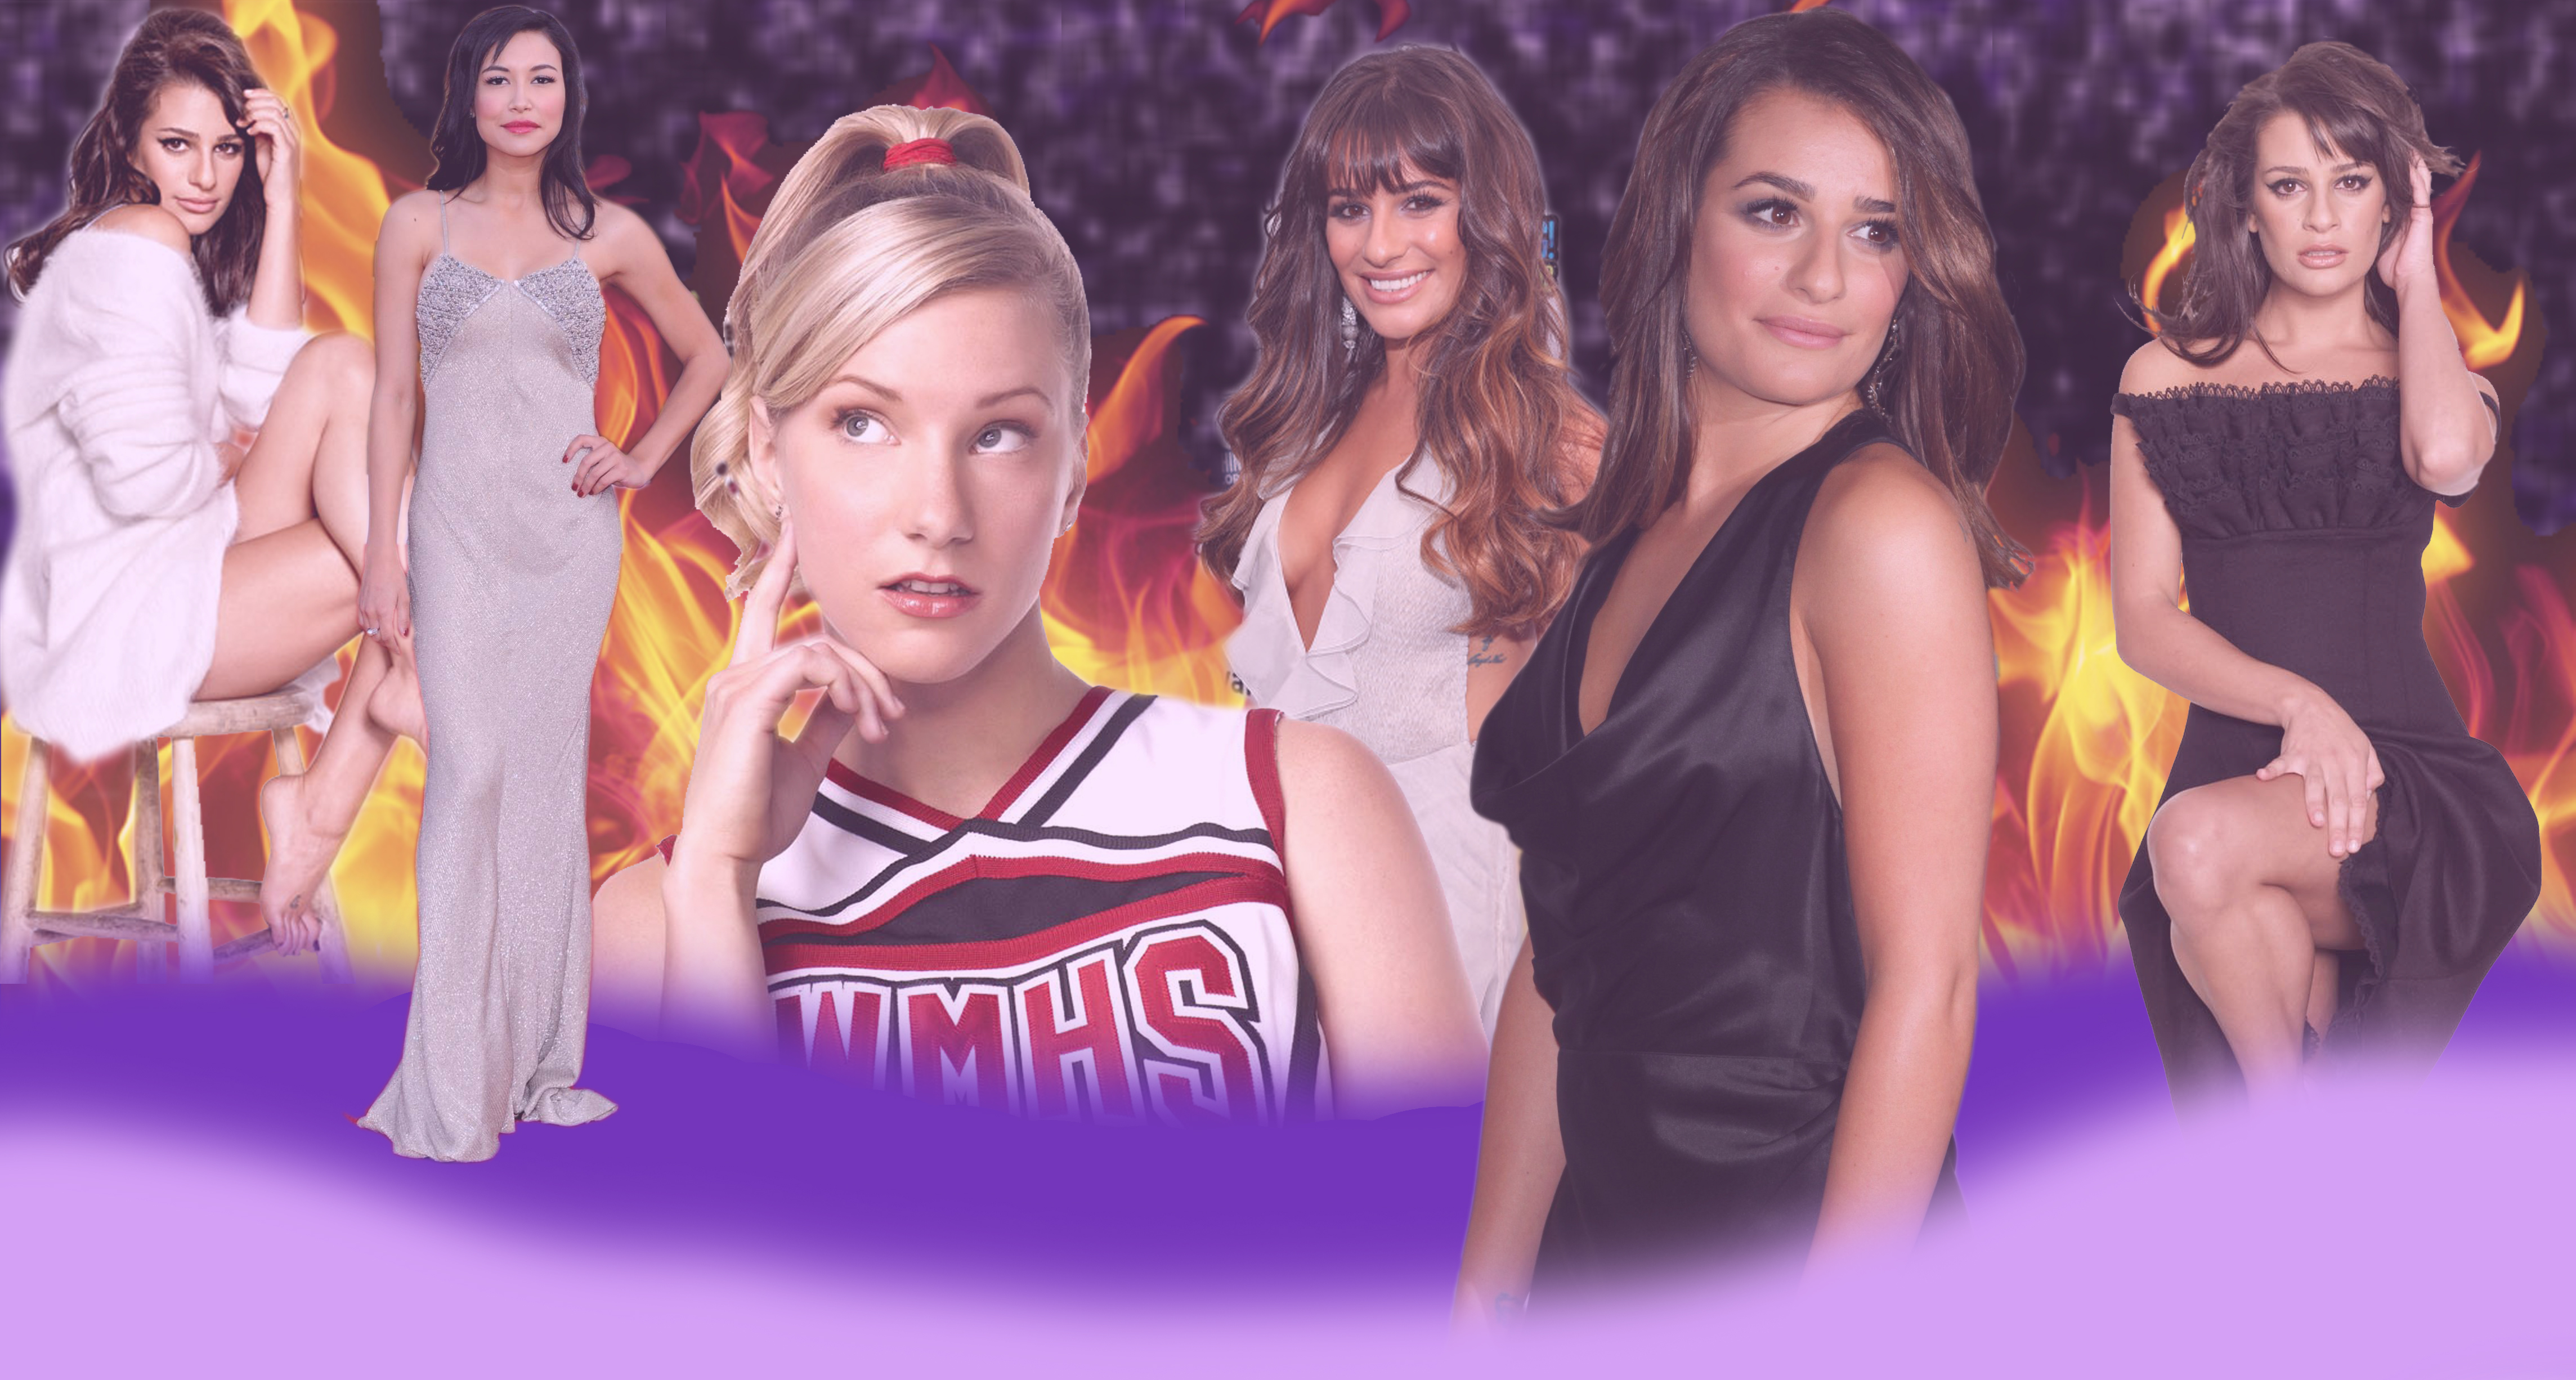 michele 4 Heather 1 Naya 1